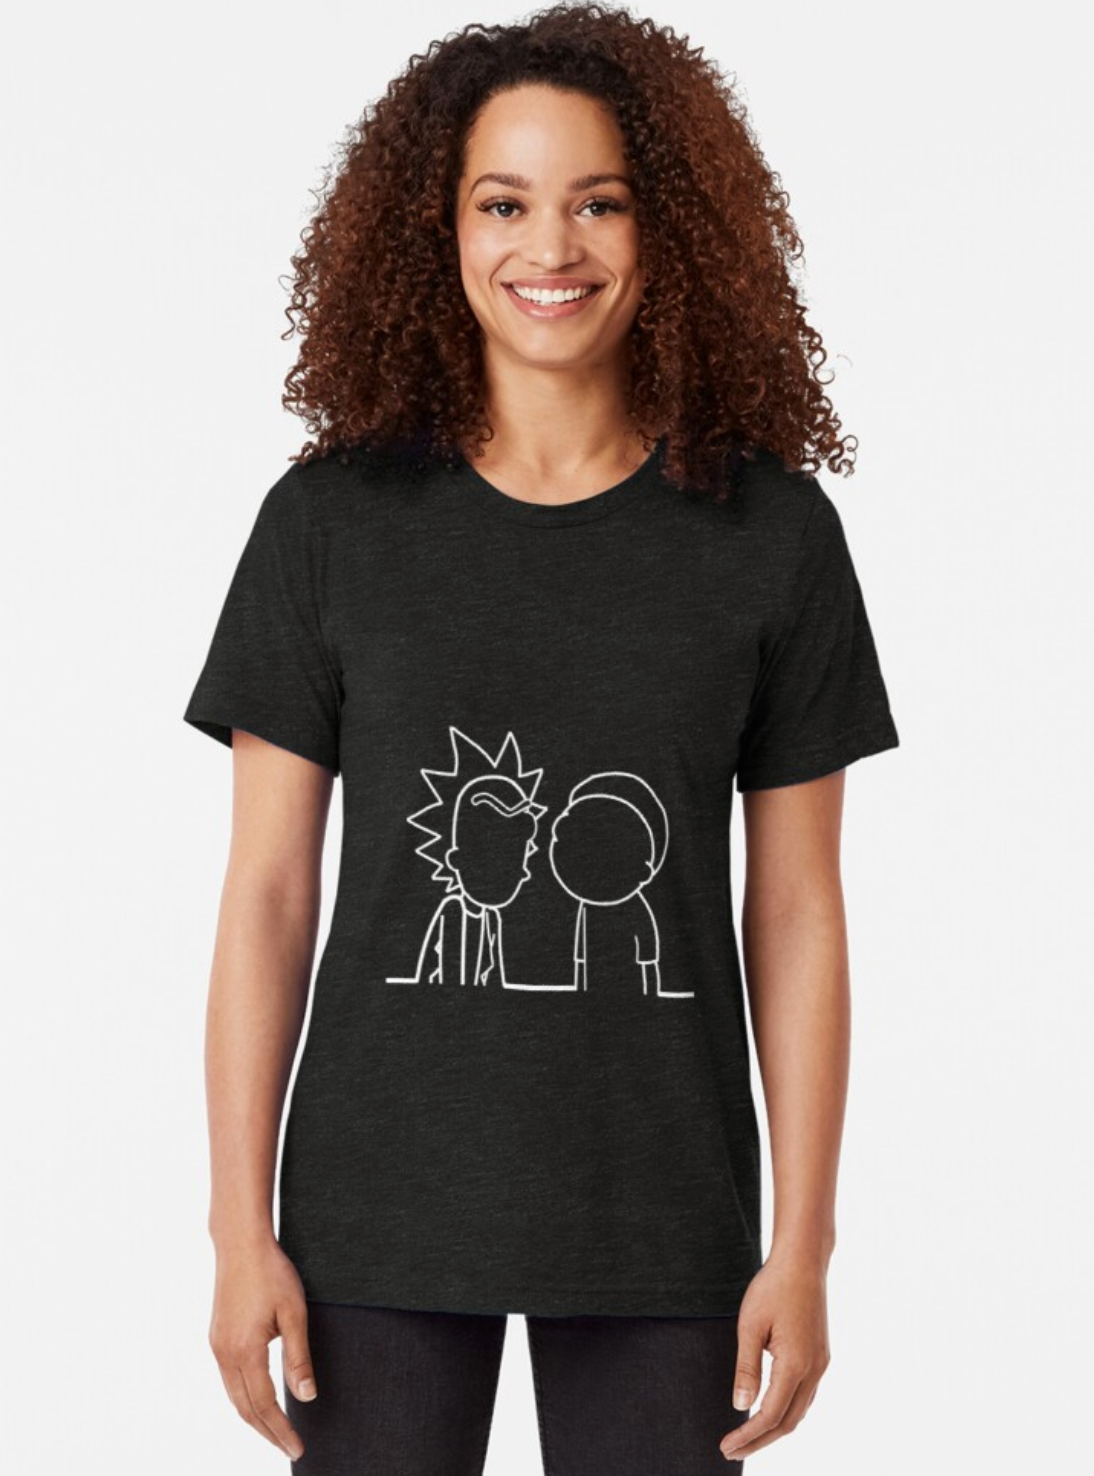 tri_blend_t-shirt_female.png